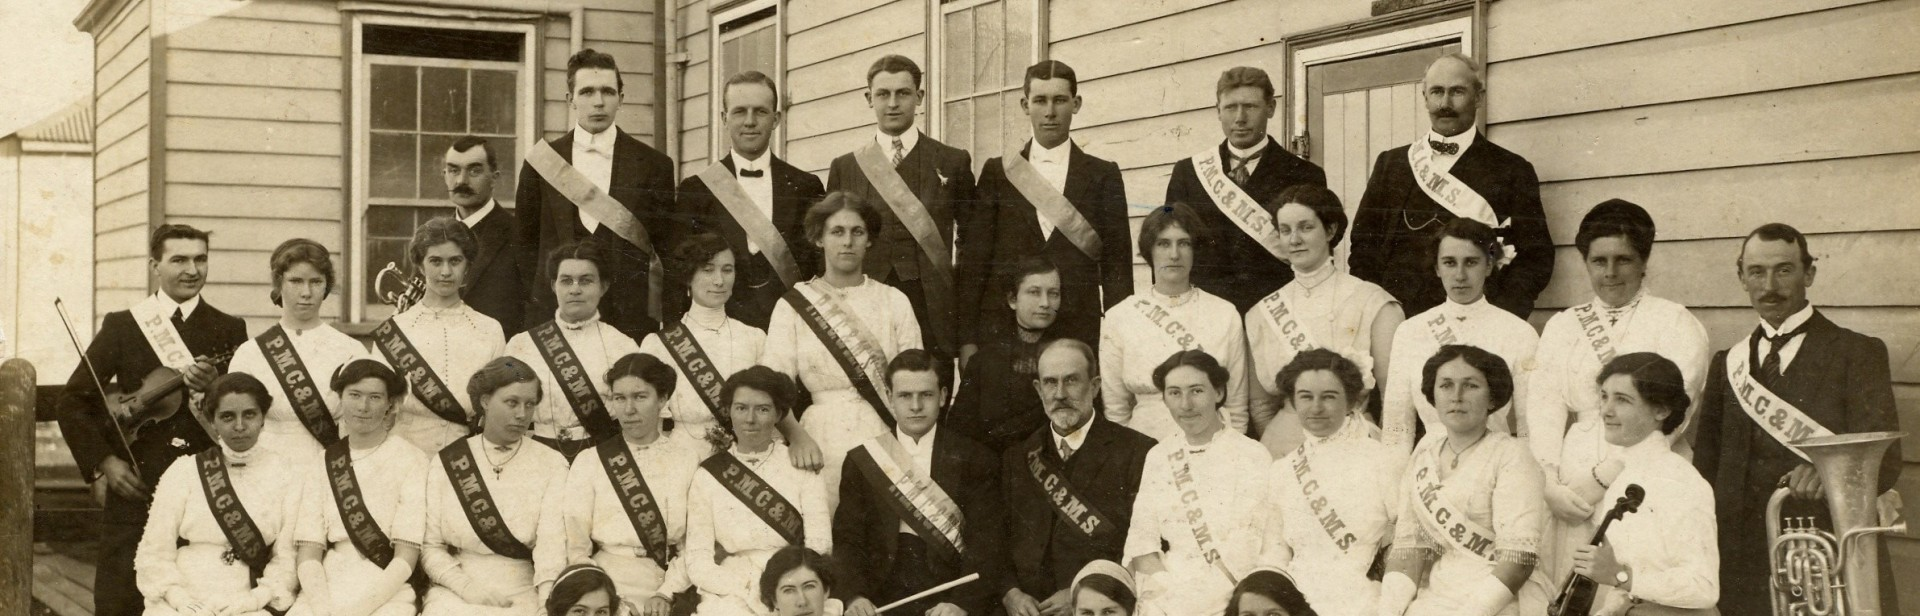 Port Macquarie Historical Society collection